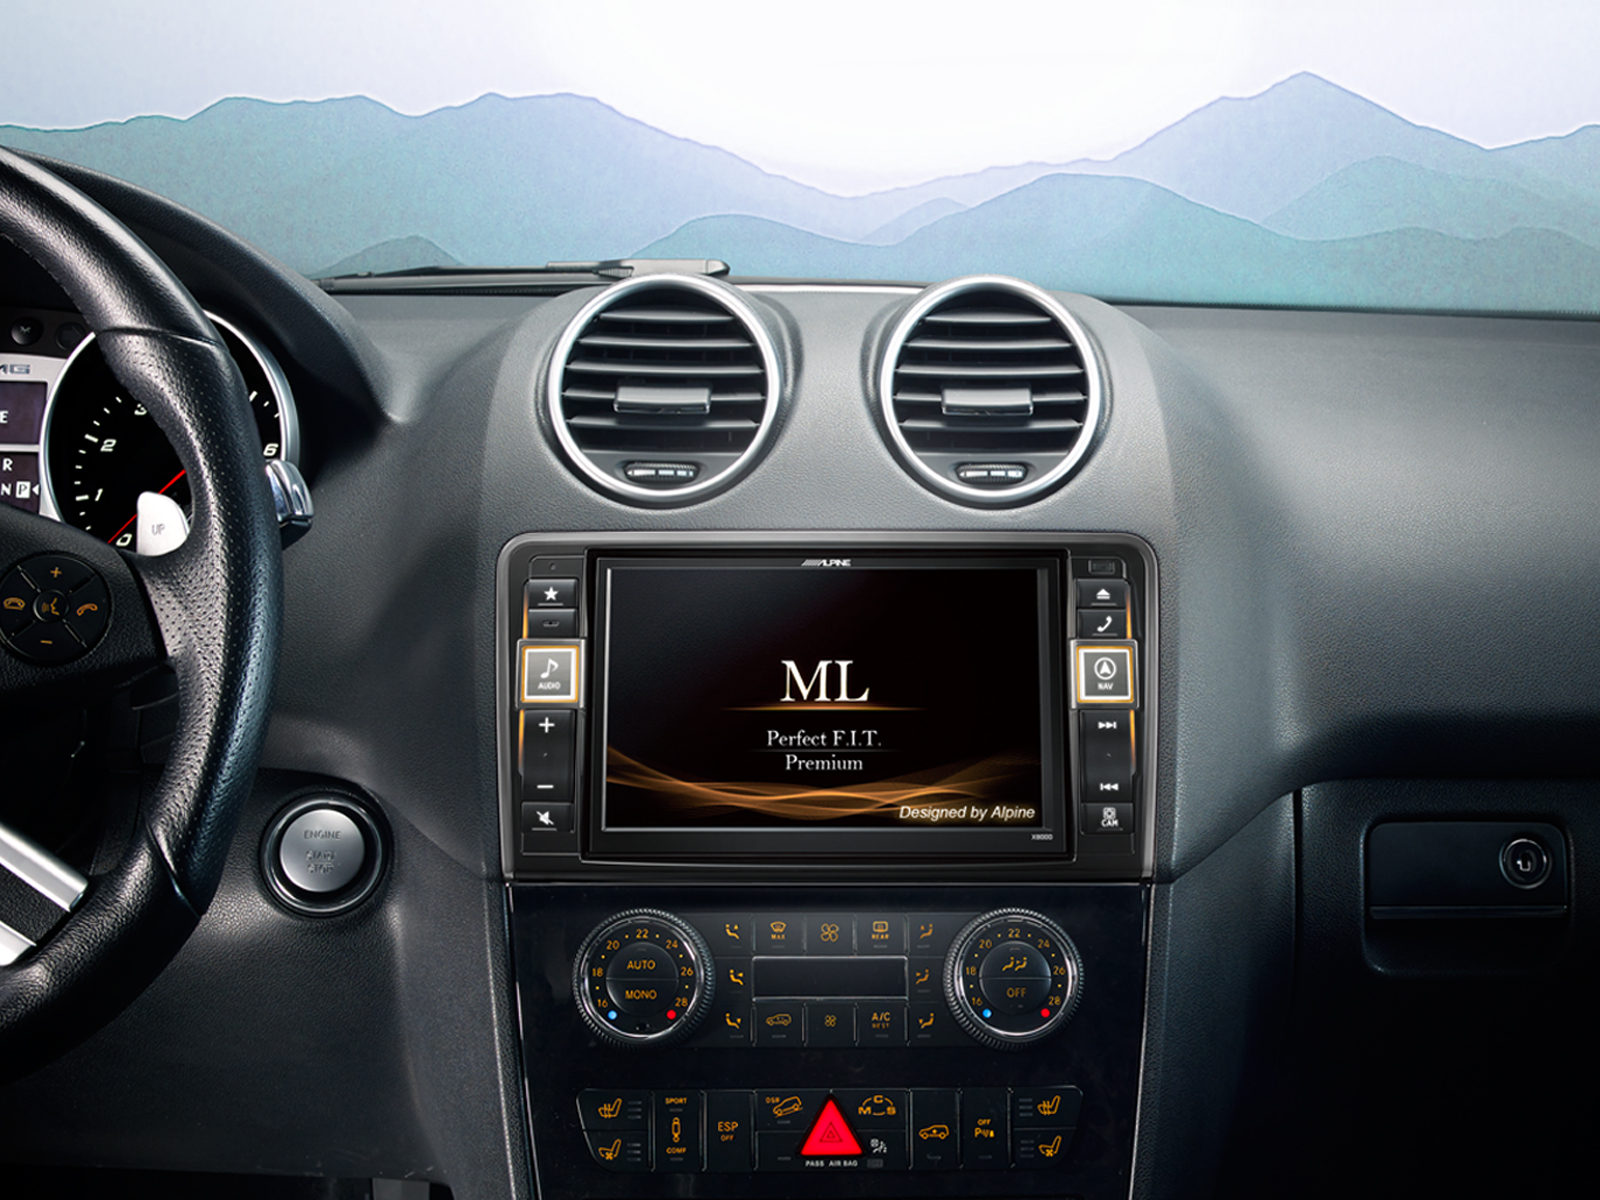 Alpine x800d ml sistema de navegaci n mercedes benz ml y for Antenne autoradio interieur